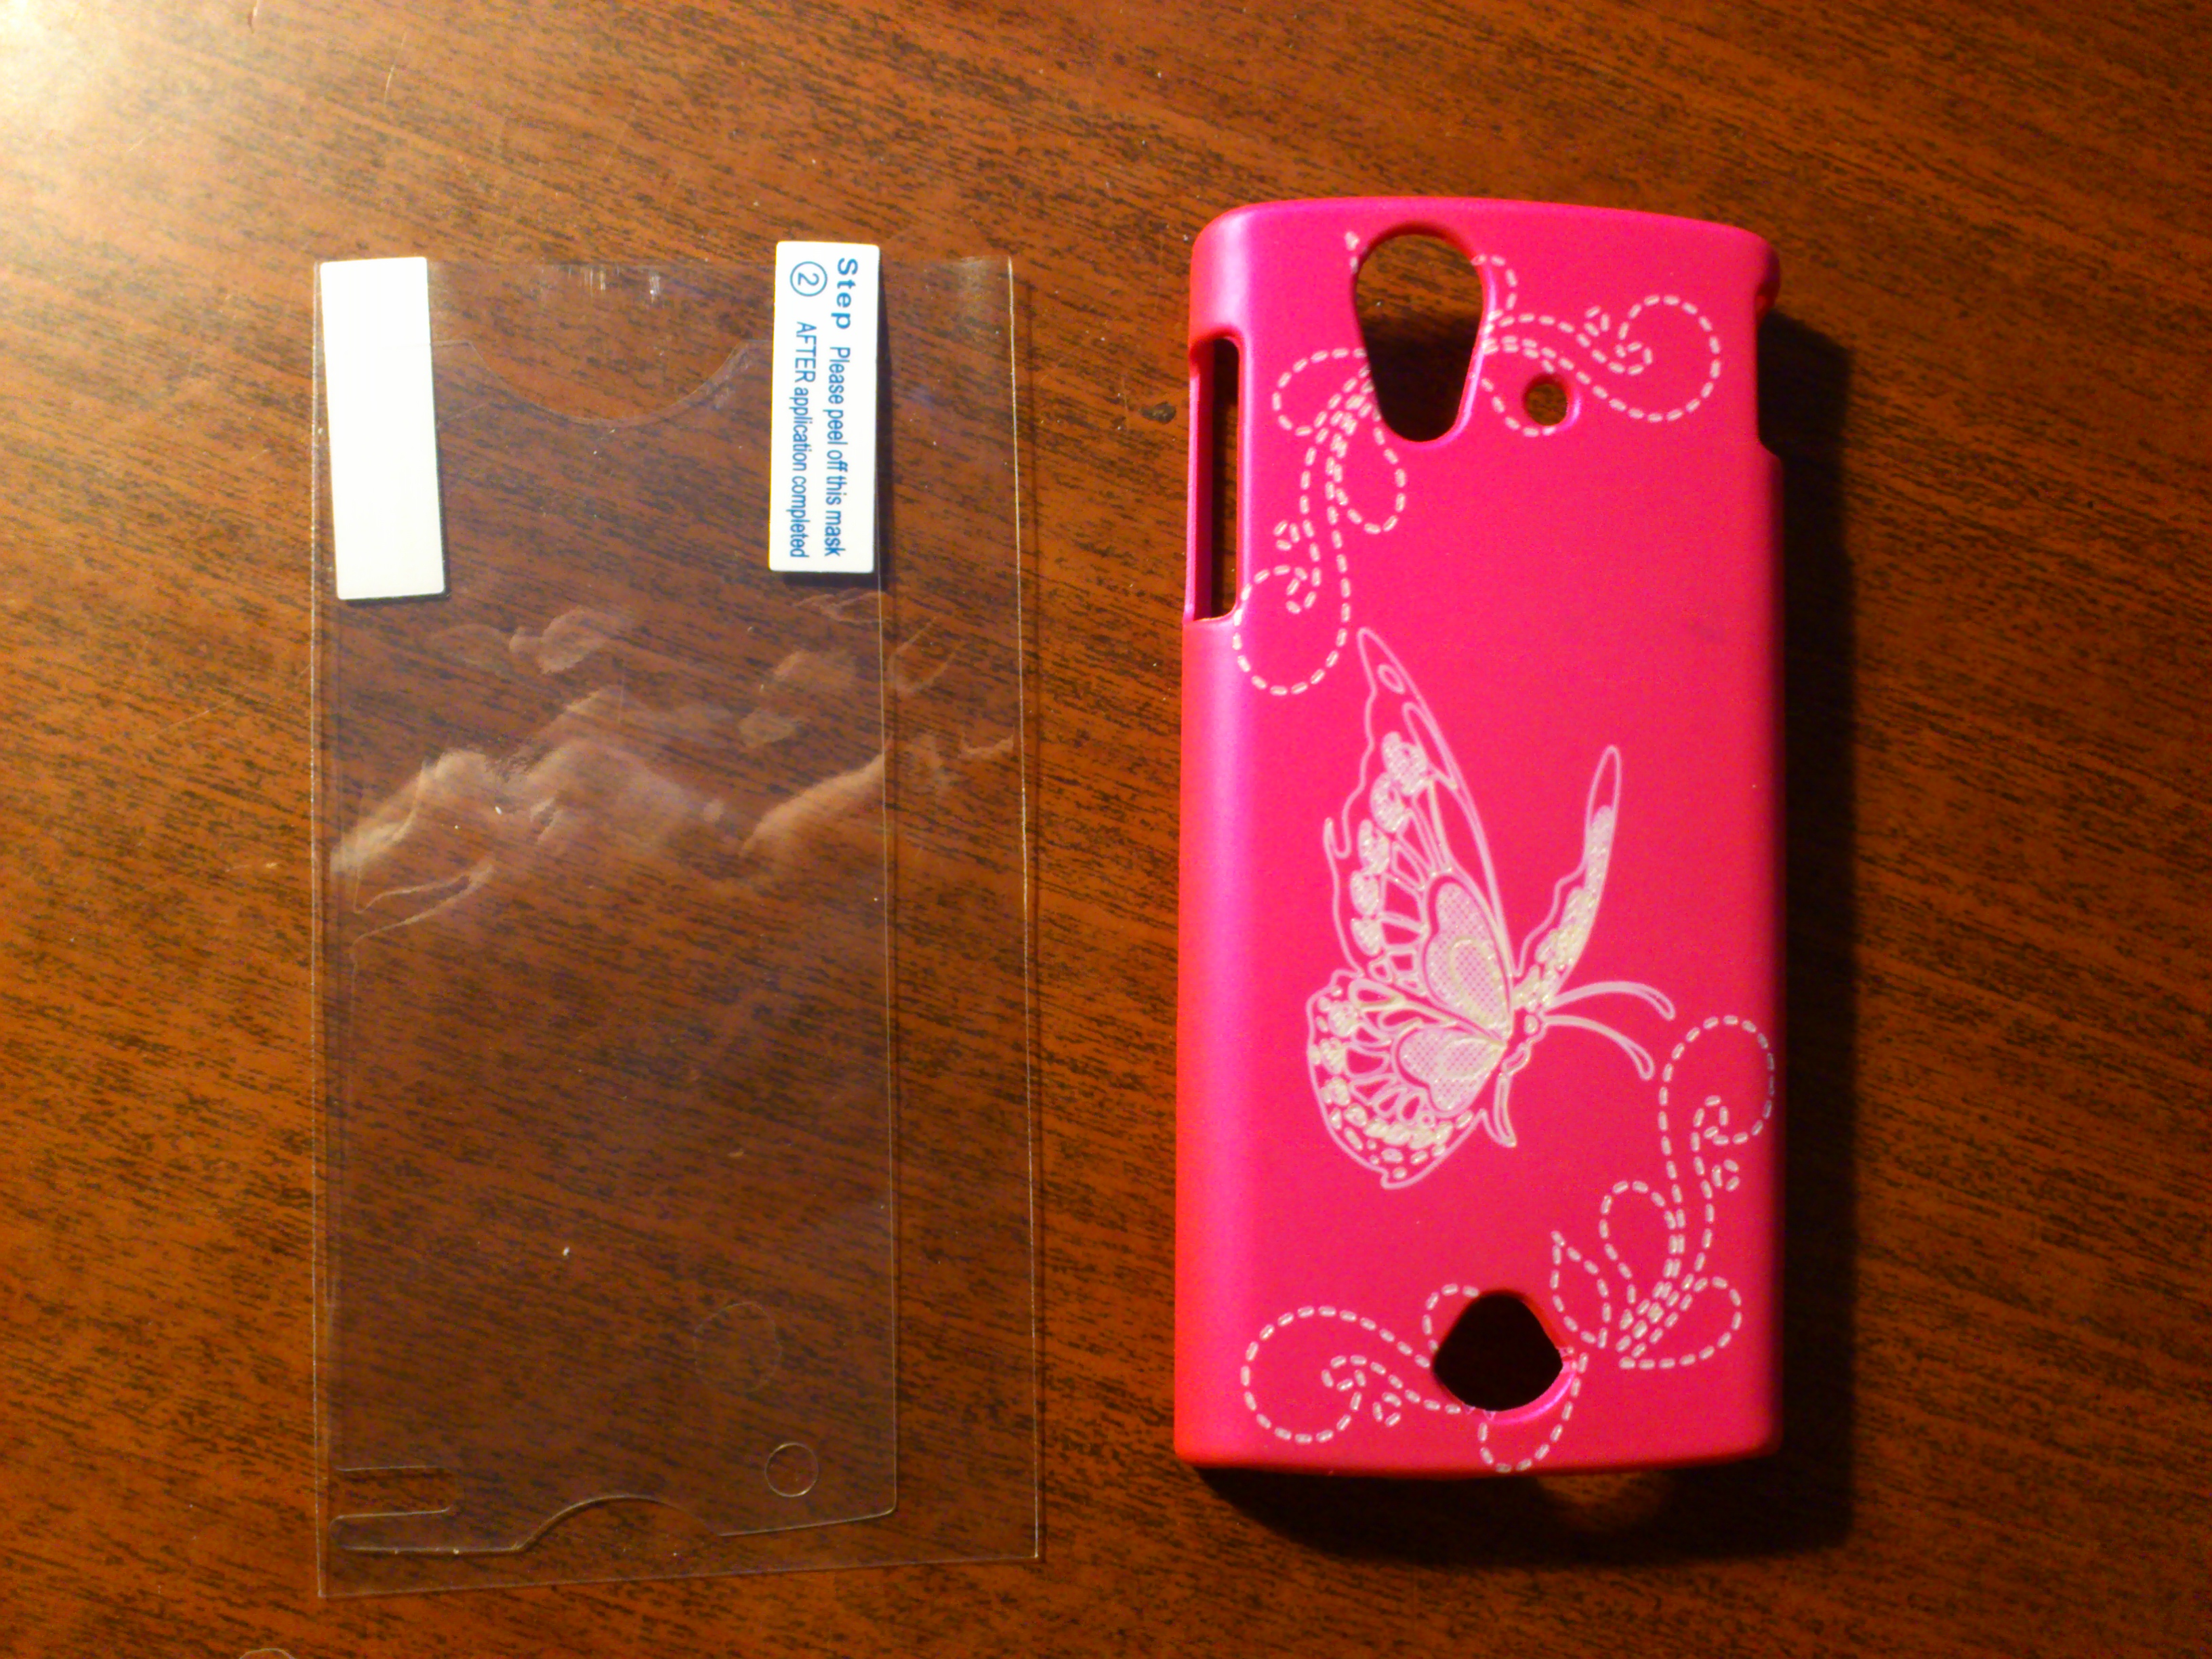 Butterfly Xperia Ray ST18i Hotpink